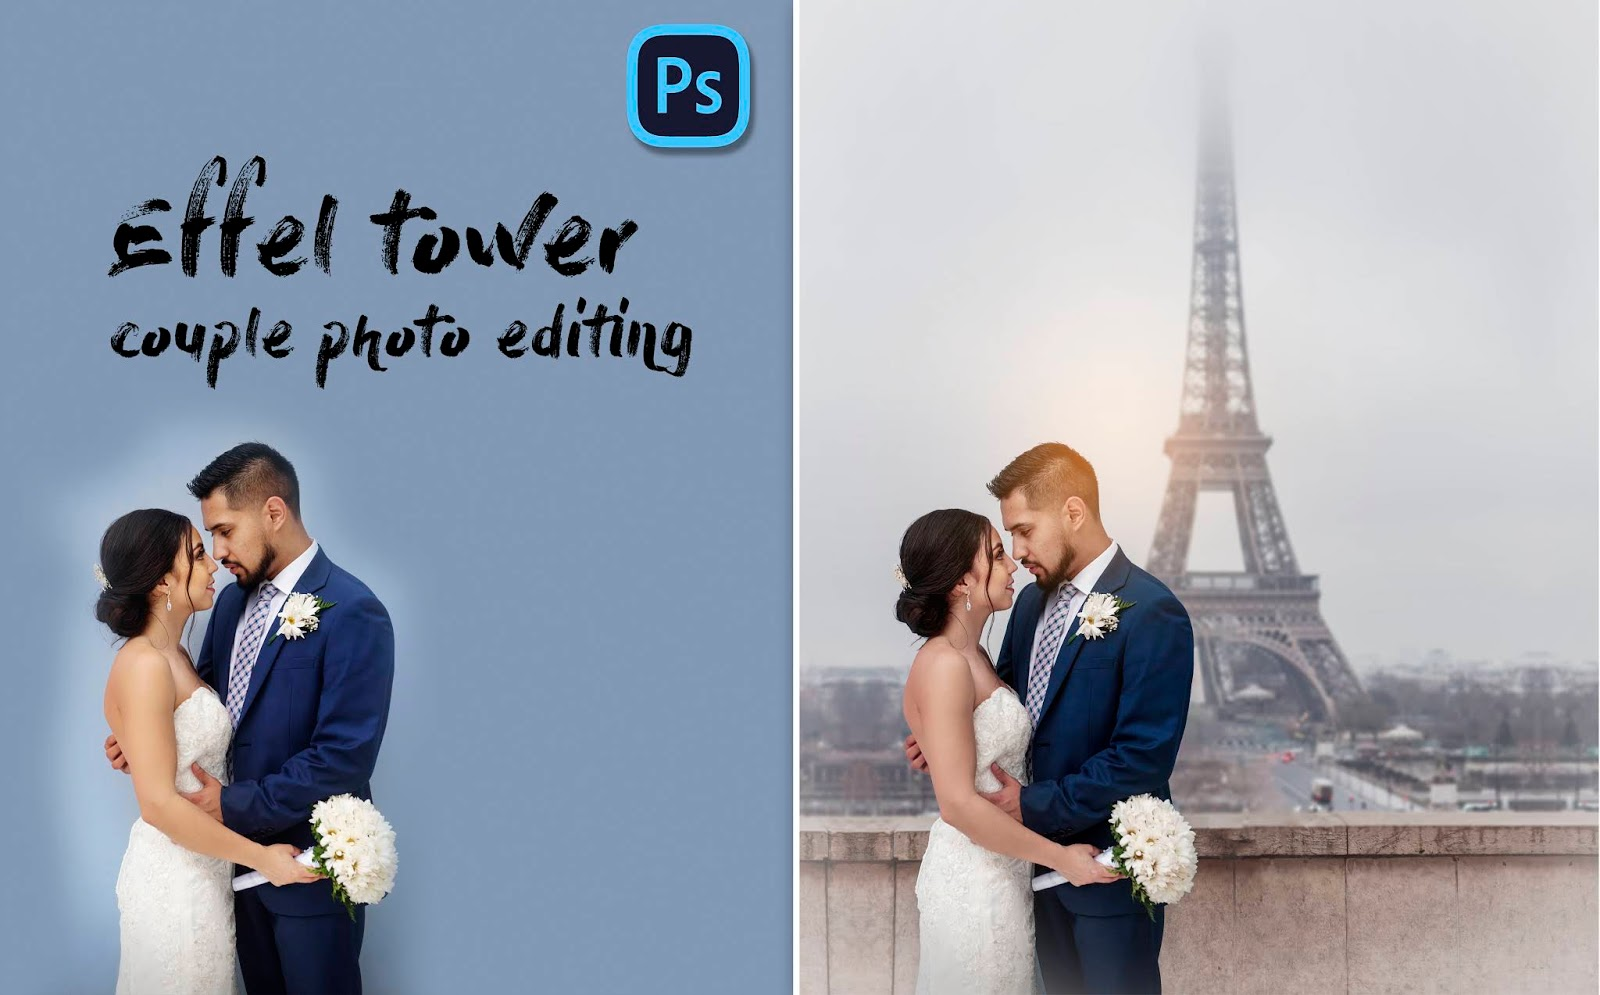 How to Edit Pre-Wedding Photos in Photoshop | Romantic Couple Photo Editing on Eiffel Tower